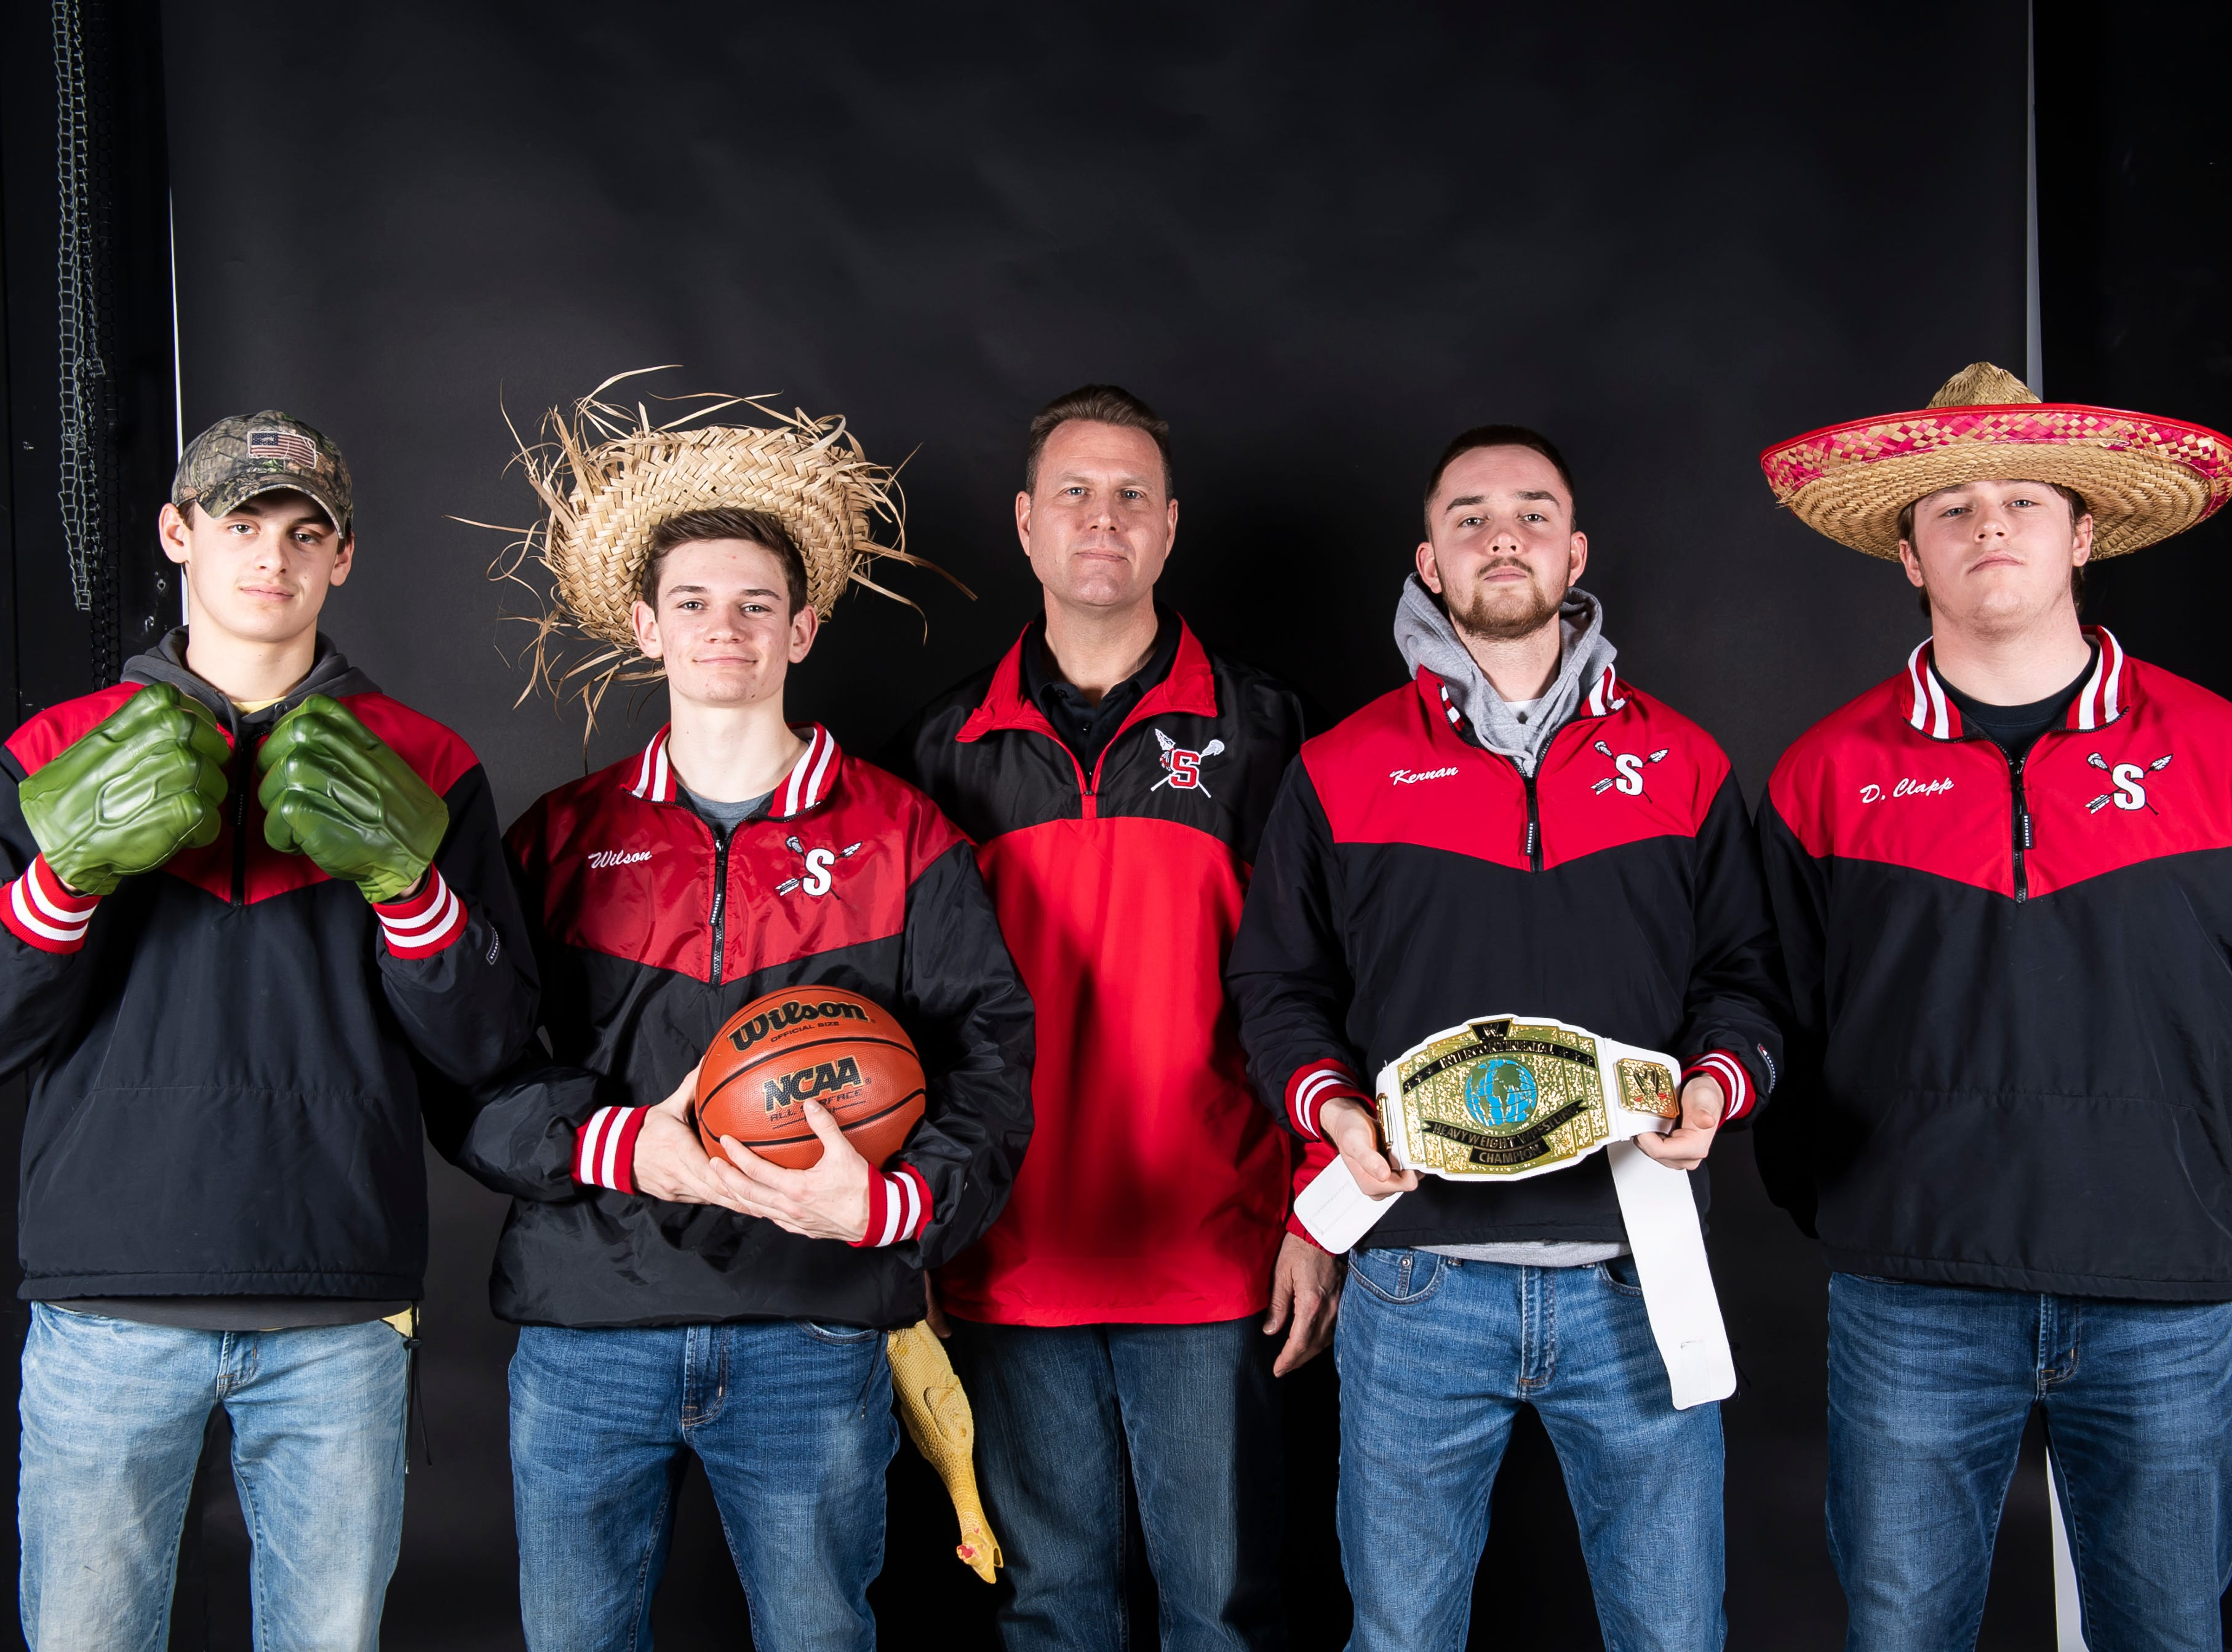 The Susquehannock boys lacrosse team strike a pose in the GameTimePA photo booth during spring sports media day in York Sunday, March 10, 2019.